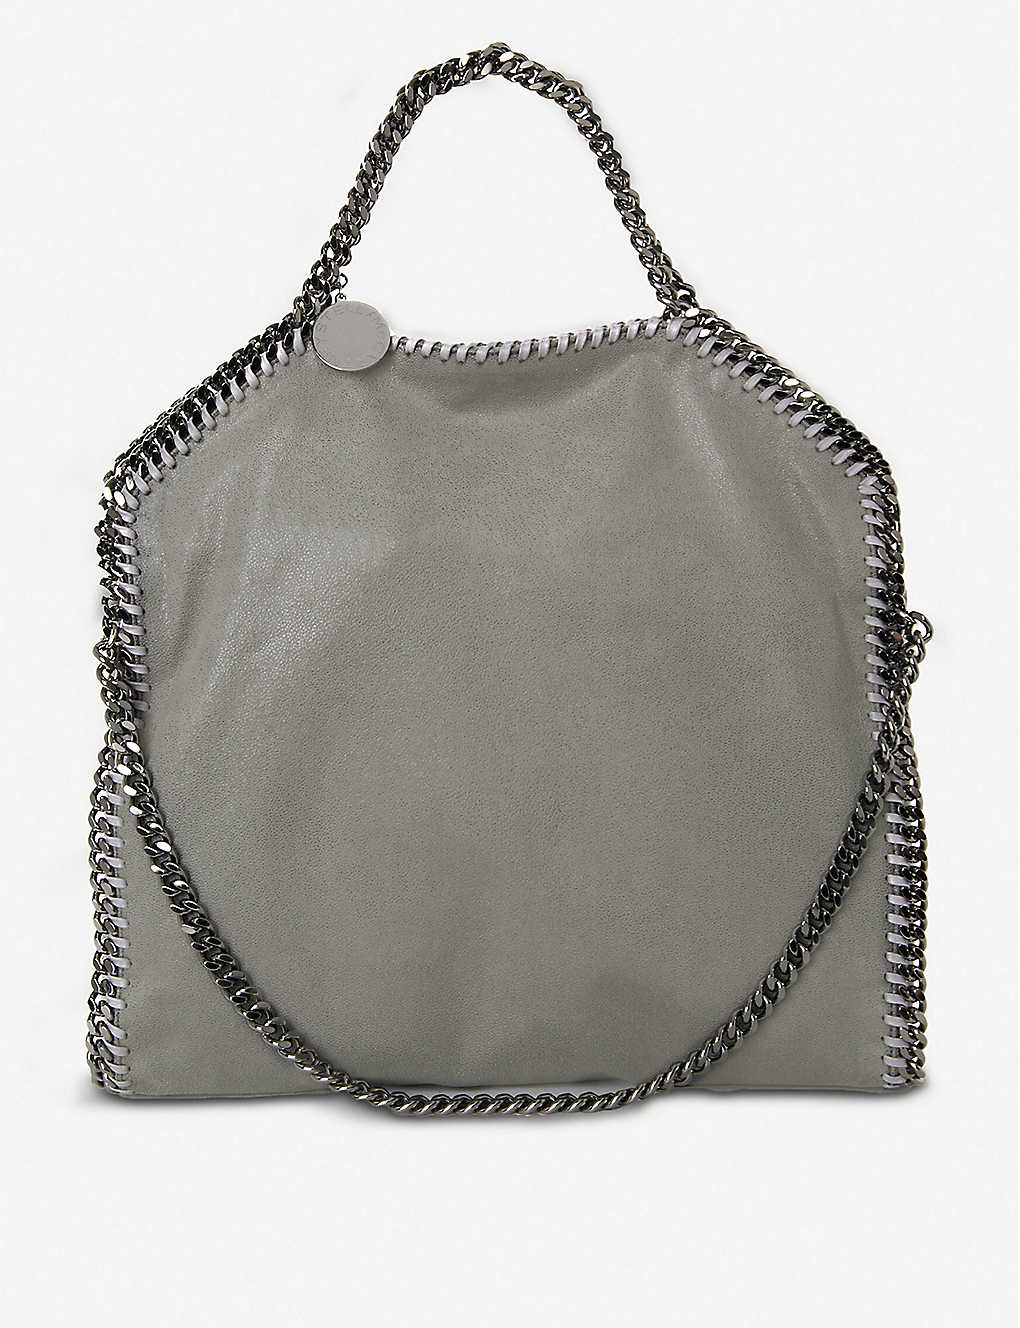 Falabella Stella Mccartney Stella Mccartney Falabella